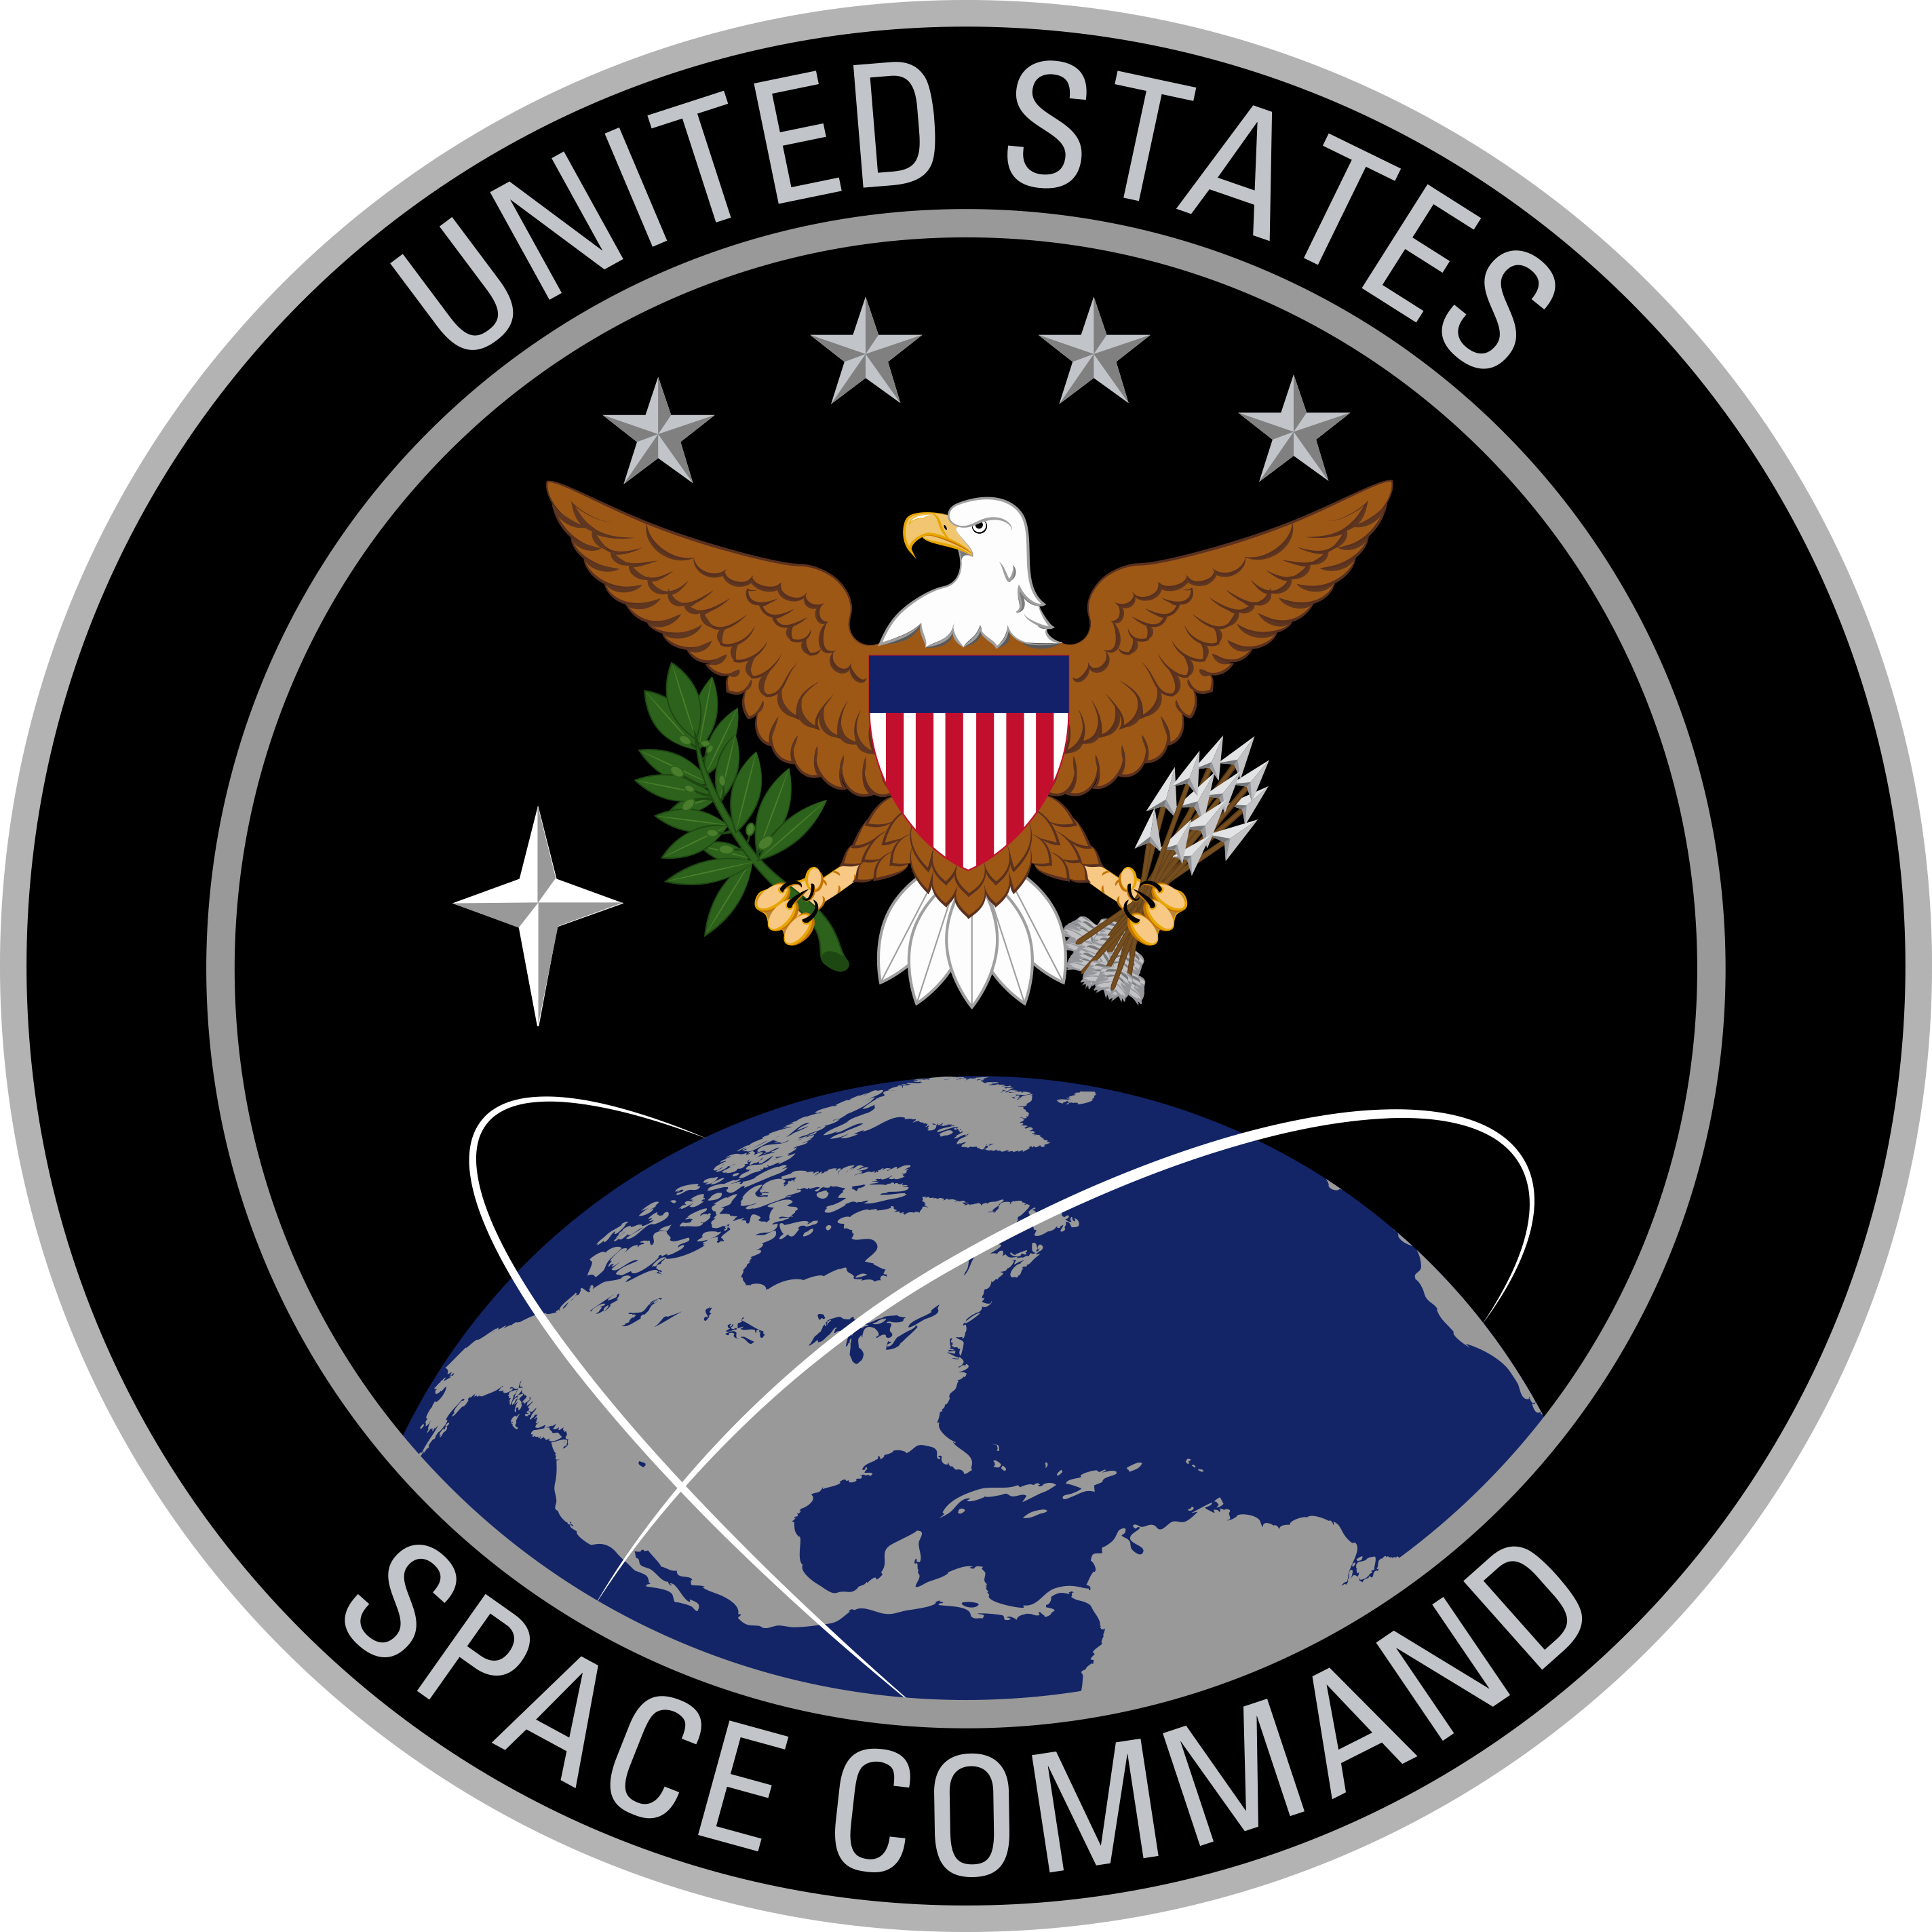 File:United States Space Command emblem 2019.png.